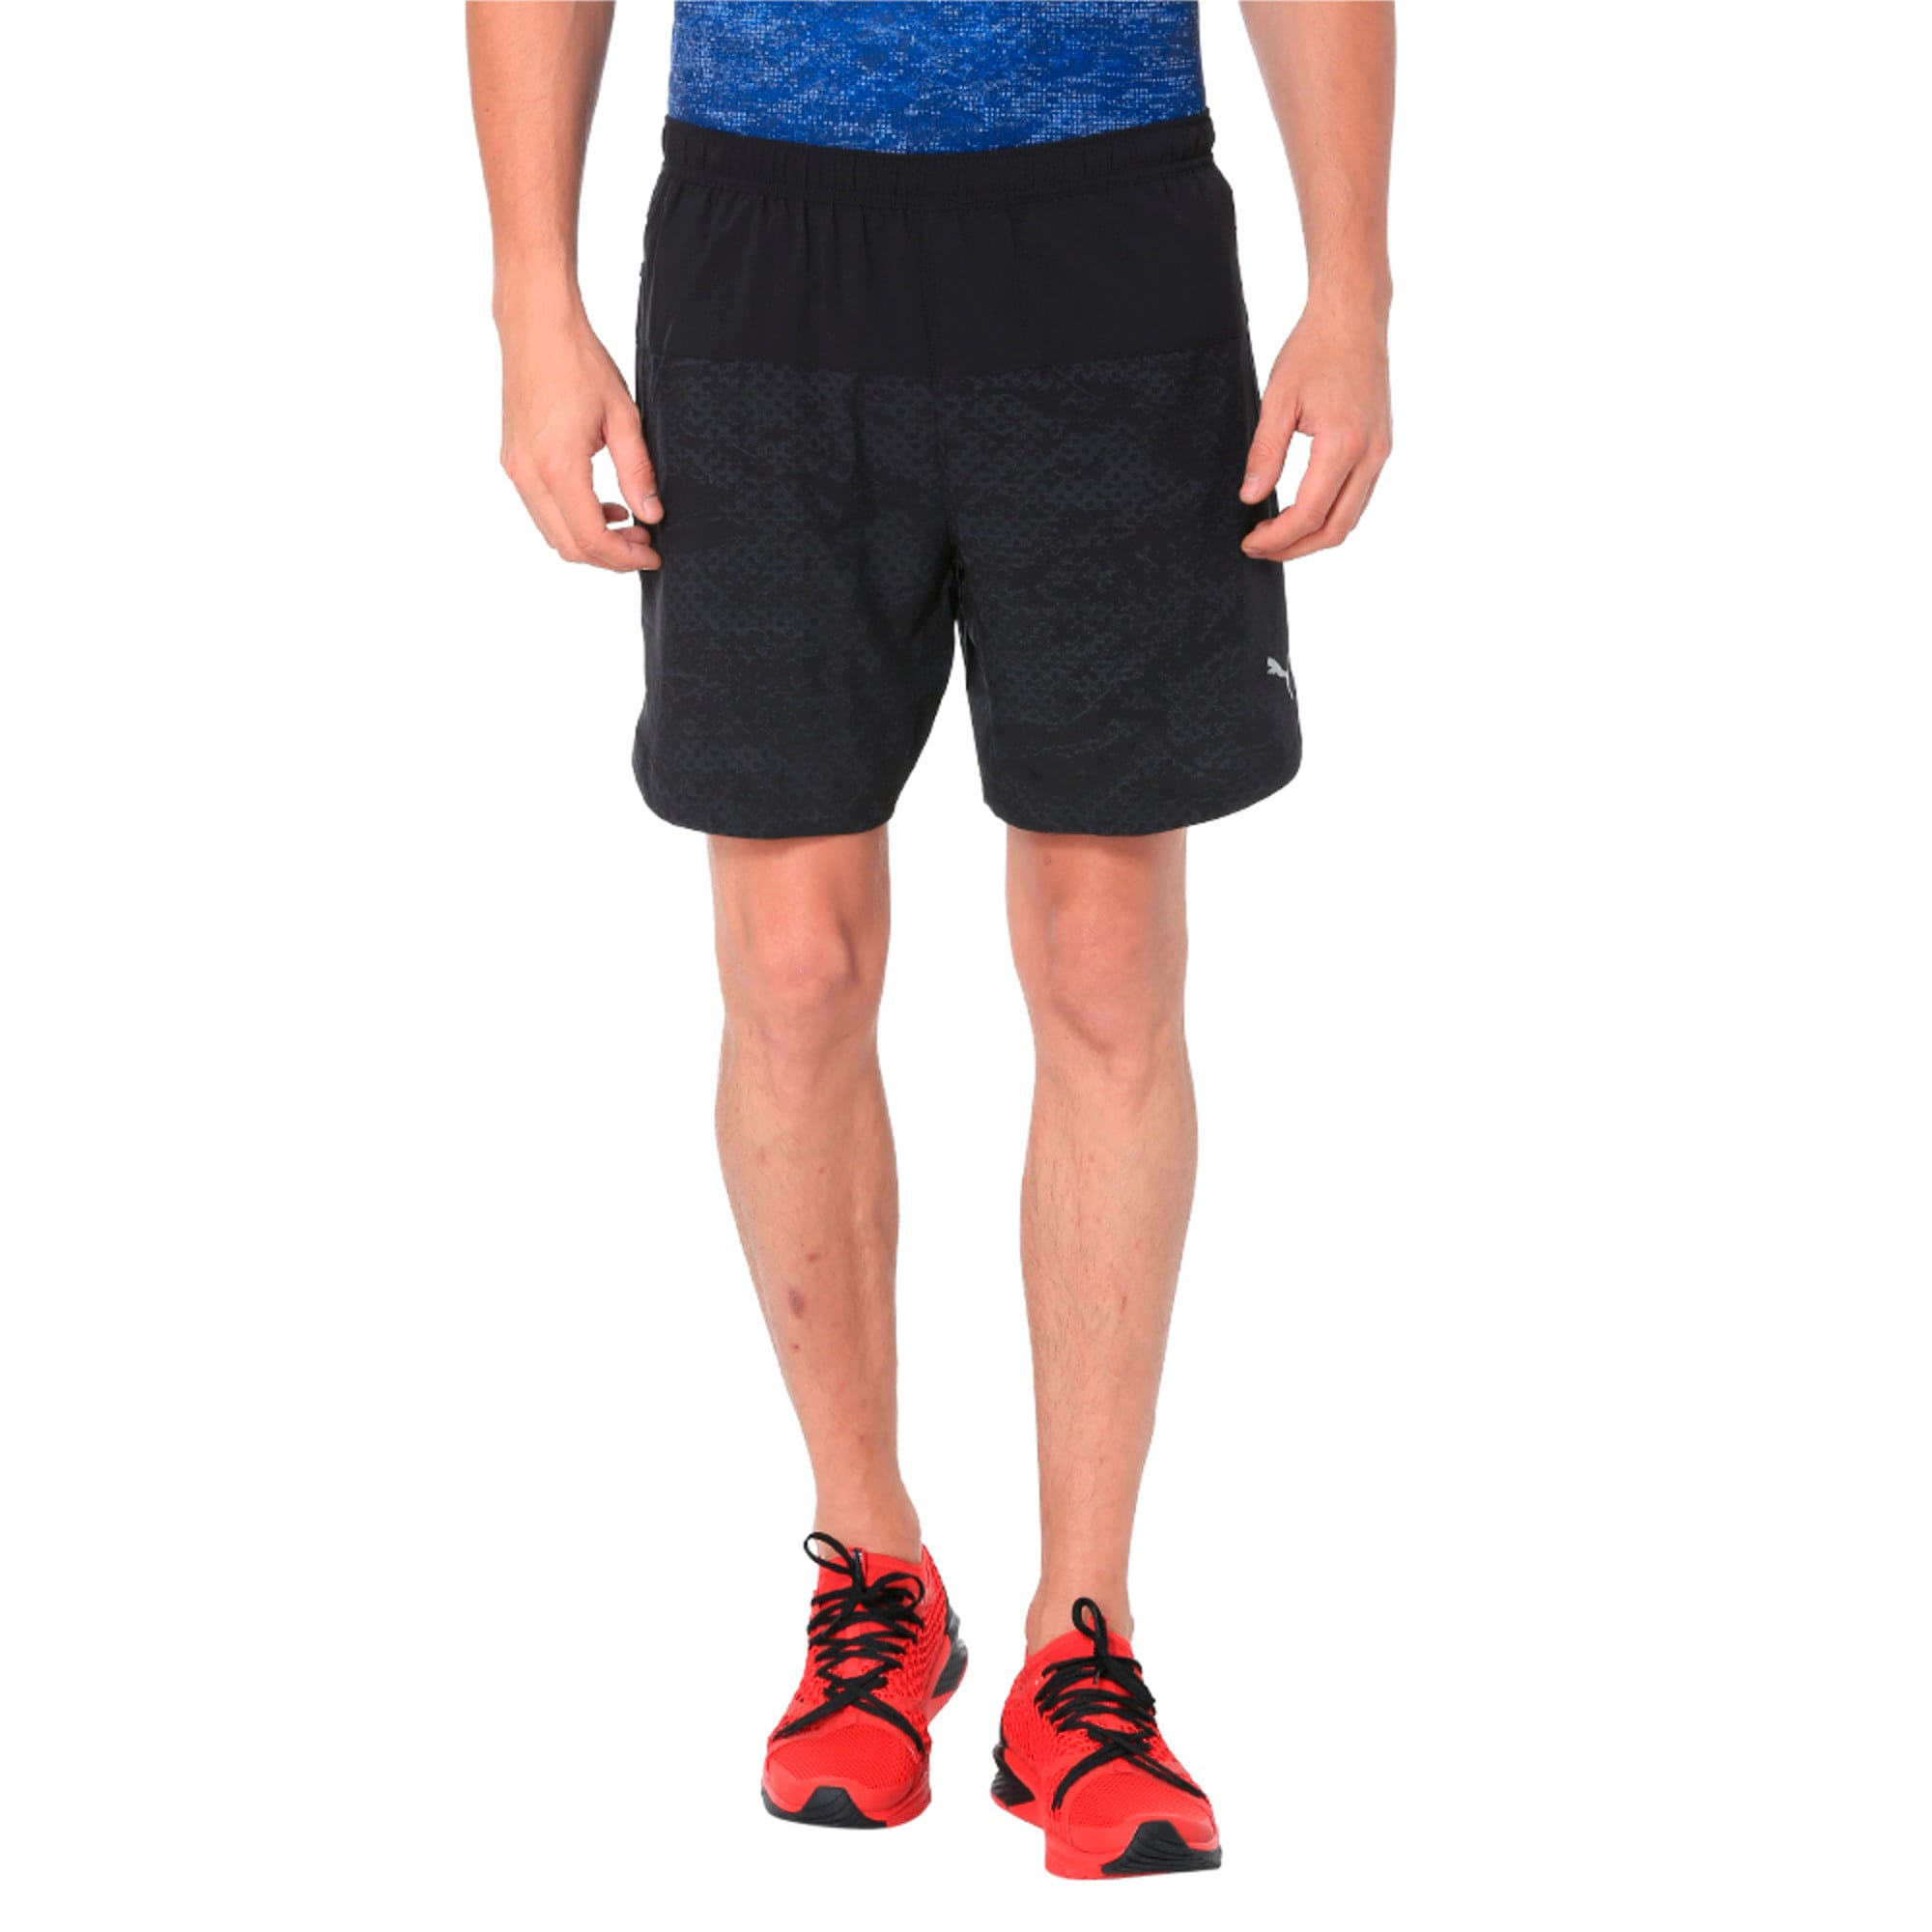 Thumbnail 5 of Pace 7'' Graphic Men's Running Shorts, Puma Black, medium-IND